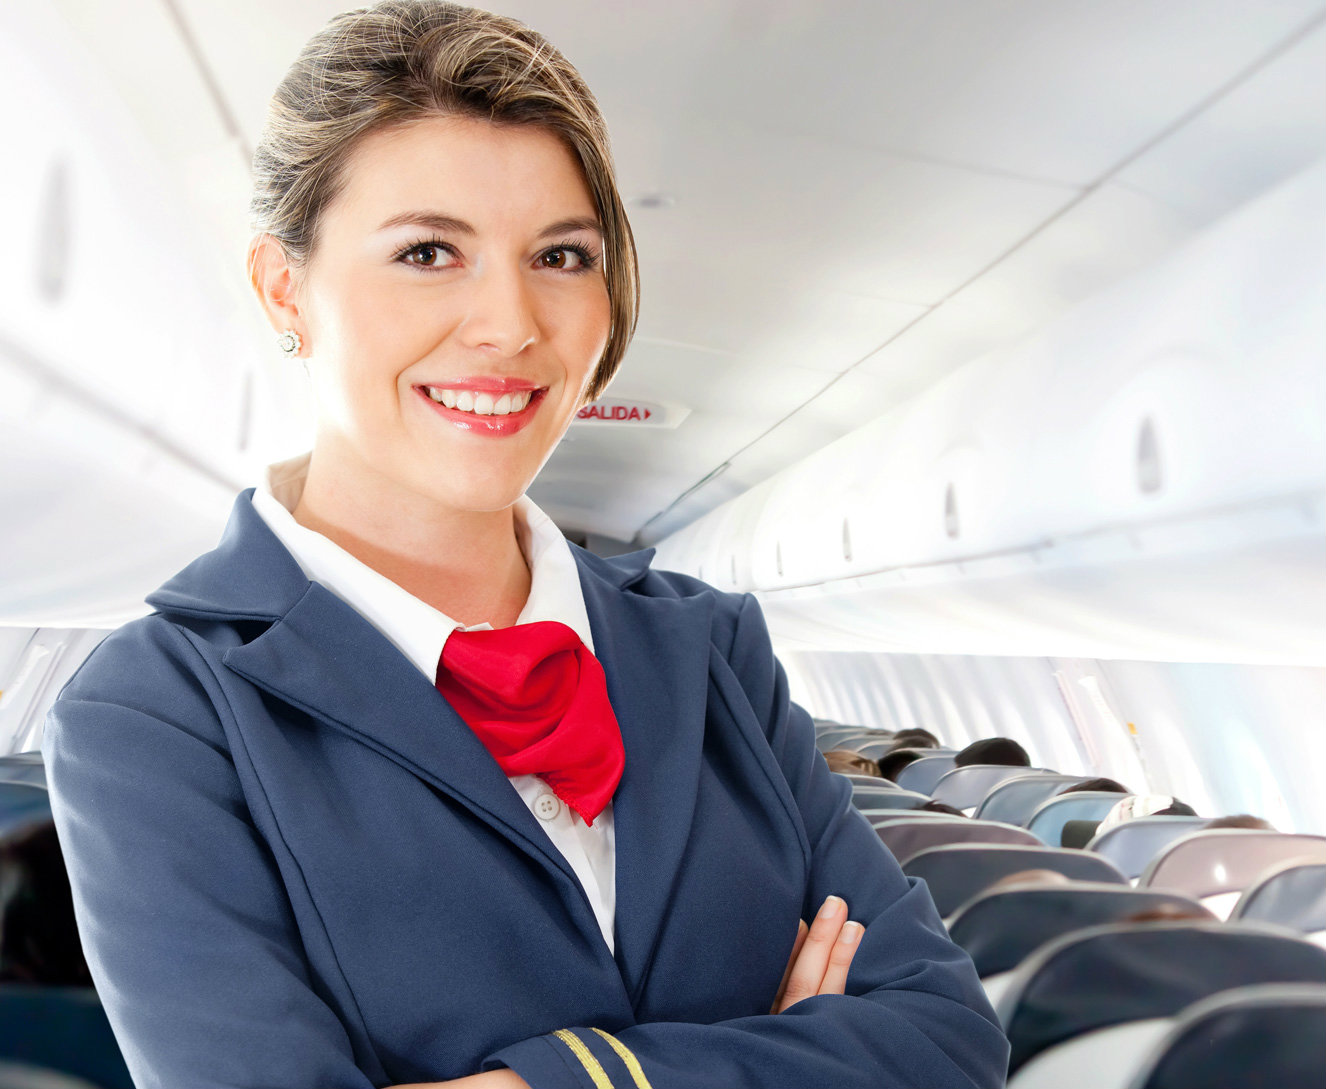 Virgin Atlantic has scrapped the rule that required their air hostesses to wear make-up.